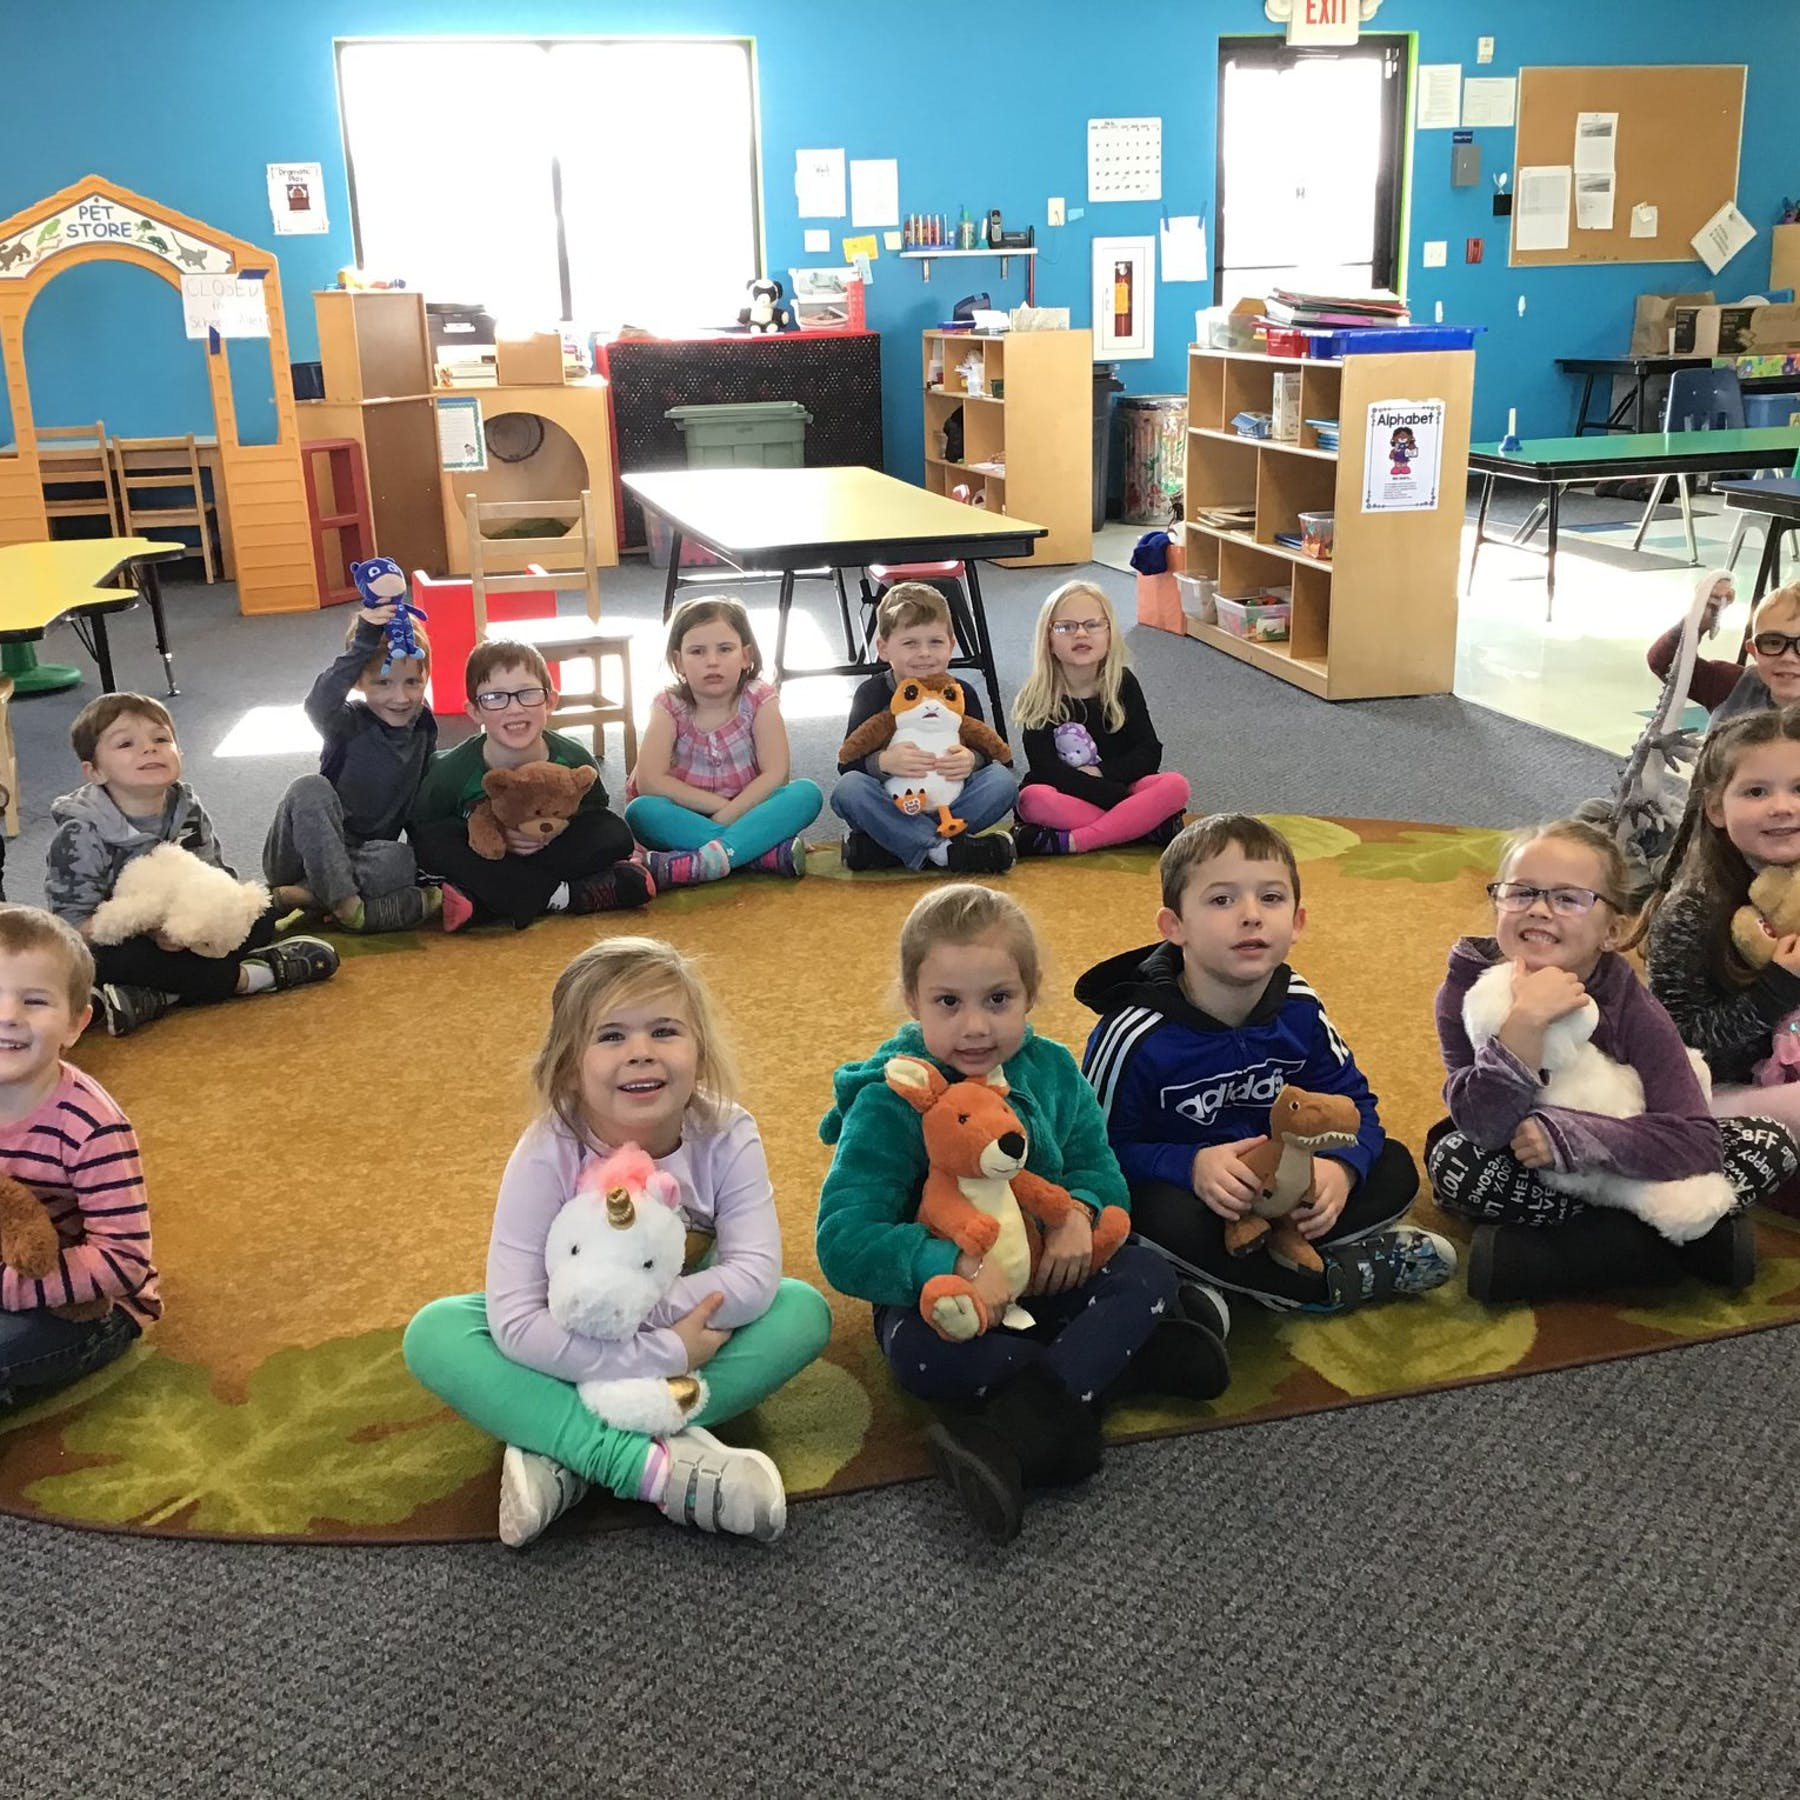 Starting Point Day Care - Daycare in Green Bay, WI - Winnie